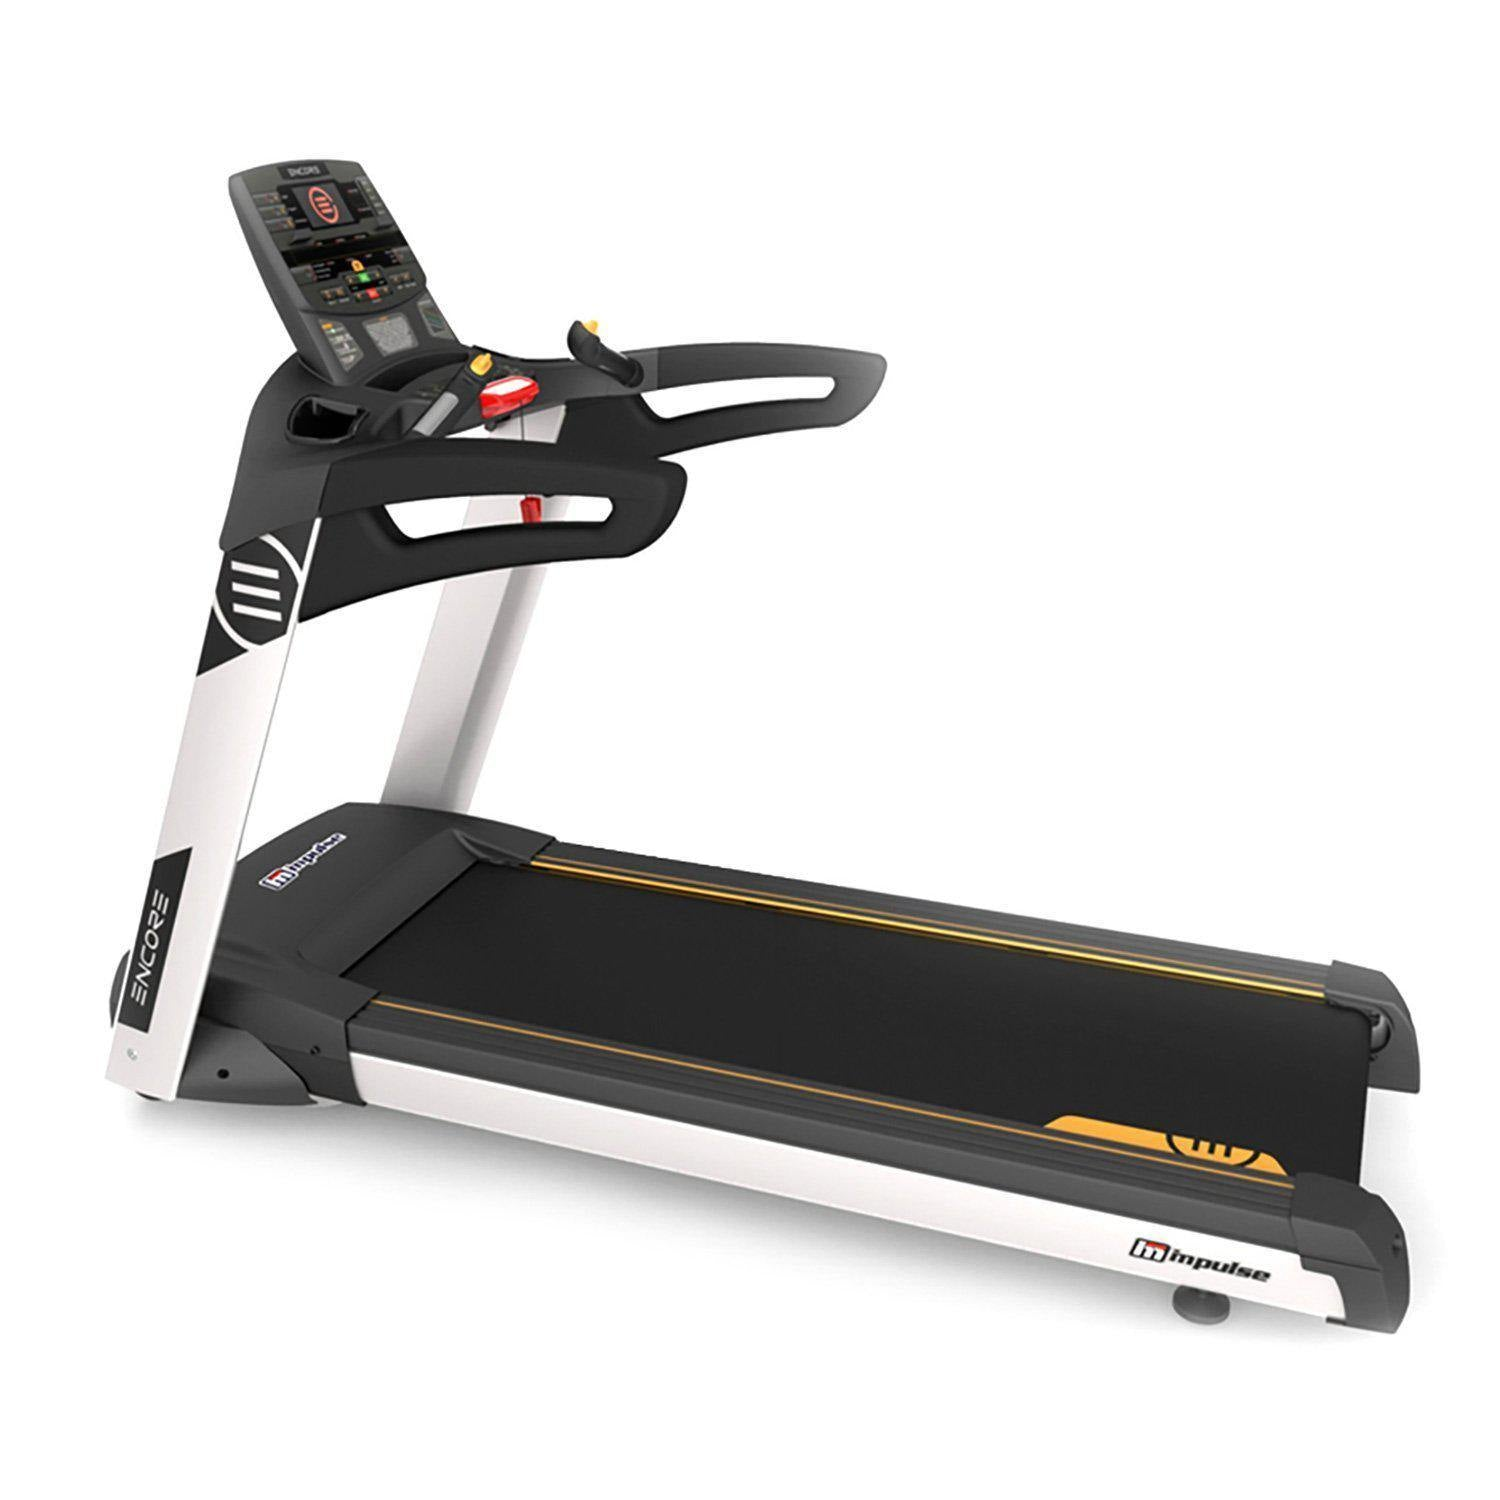 Impulse Encore ECT7 Treadmill-Treadmill-Healthstream-Cardio Online